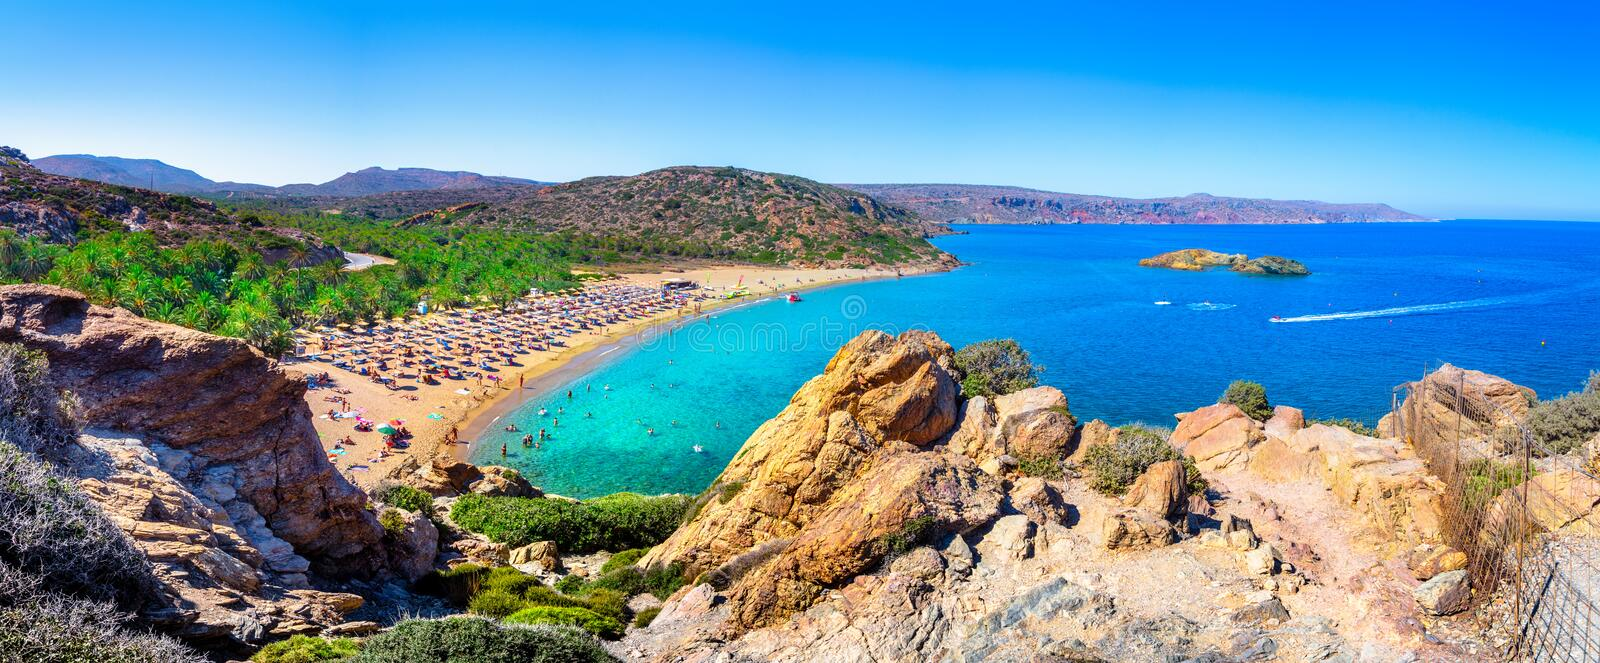 Scenic landscape of palm trees, turquoise water and tropical beach, Vai, Crete. Greece stock photo